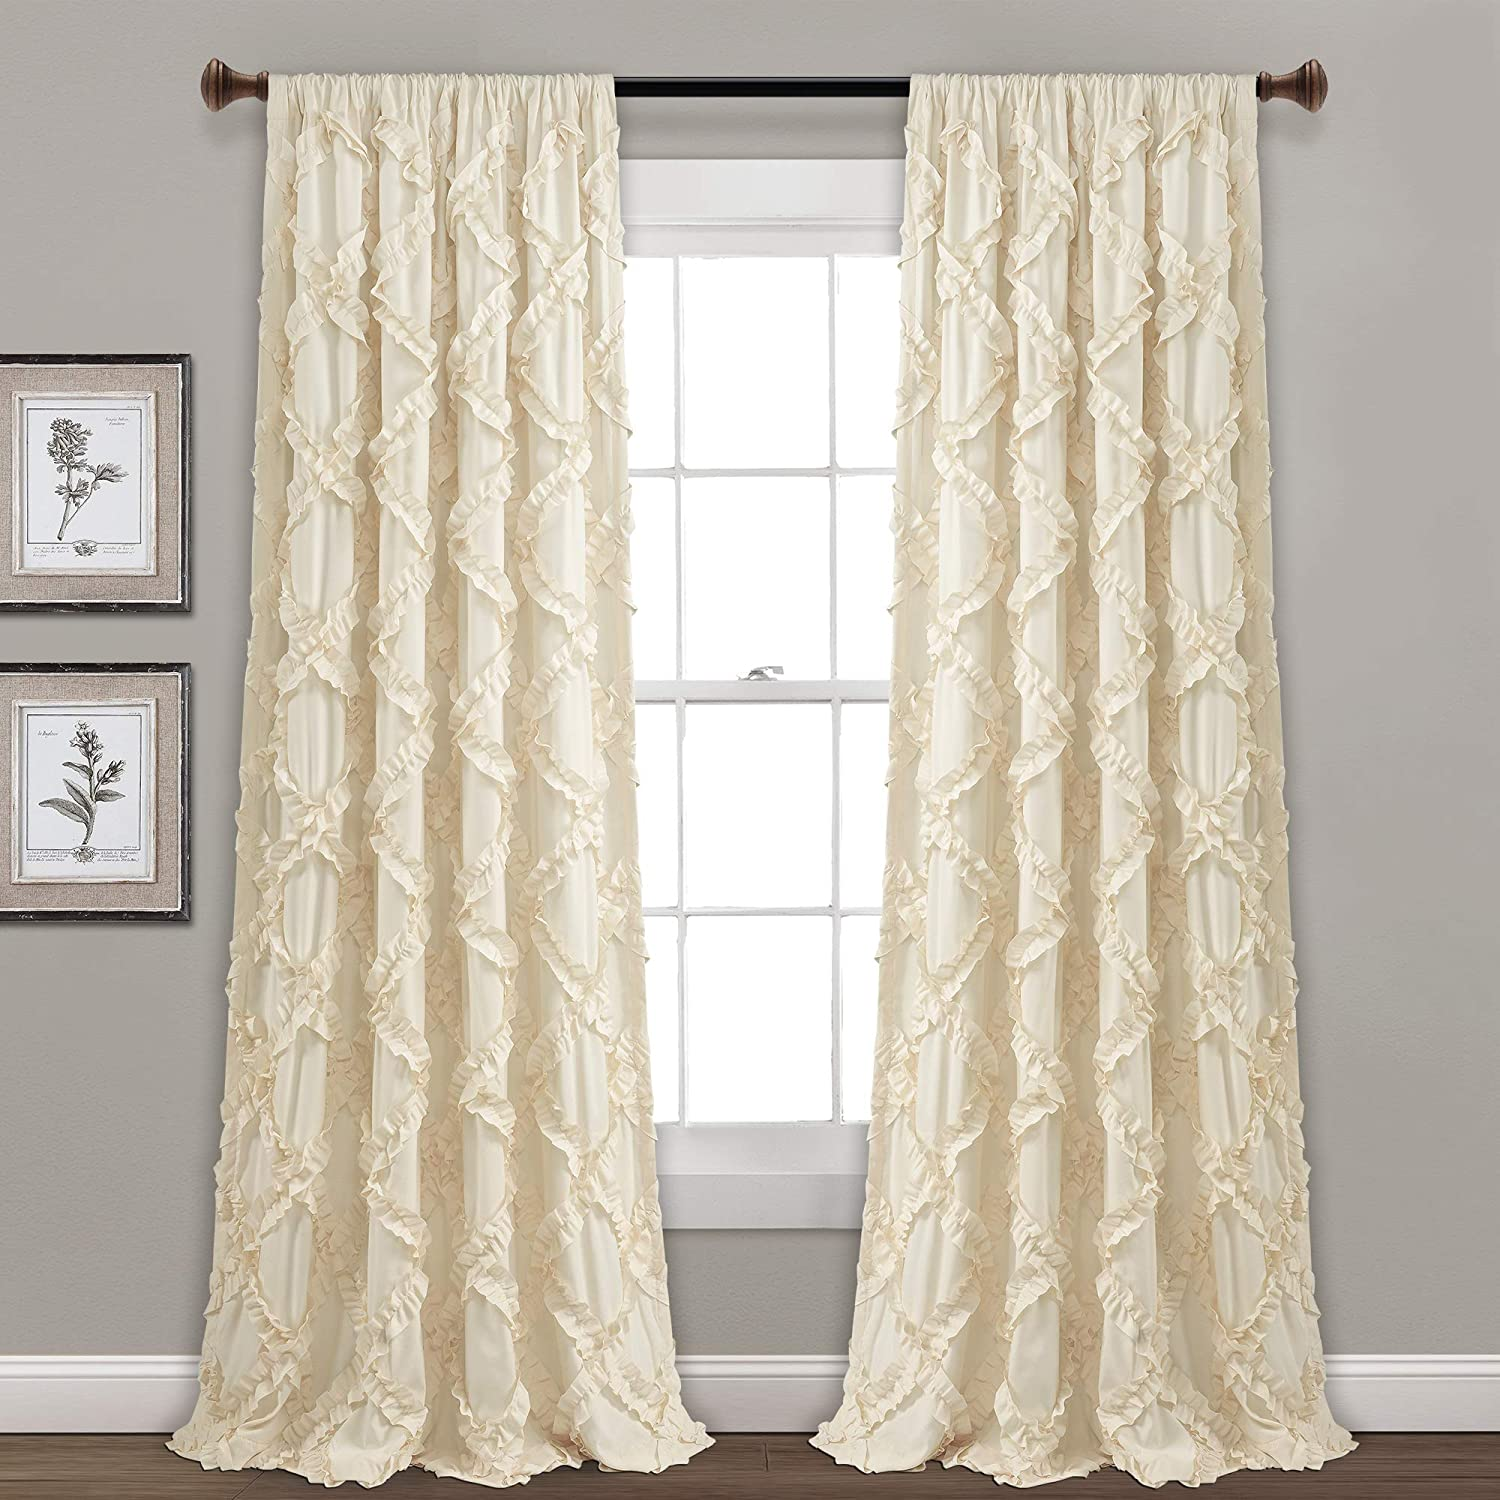 "Lush Decor, Ivory Ruffle Diamond Curtains Textured Window Panel Set for Living, Dining Room, Bedroom (Pair), 95"" x 54, 95"" x 54"""